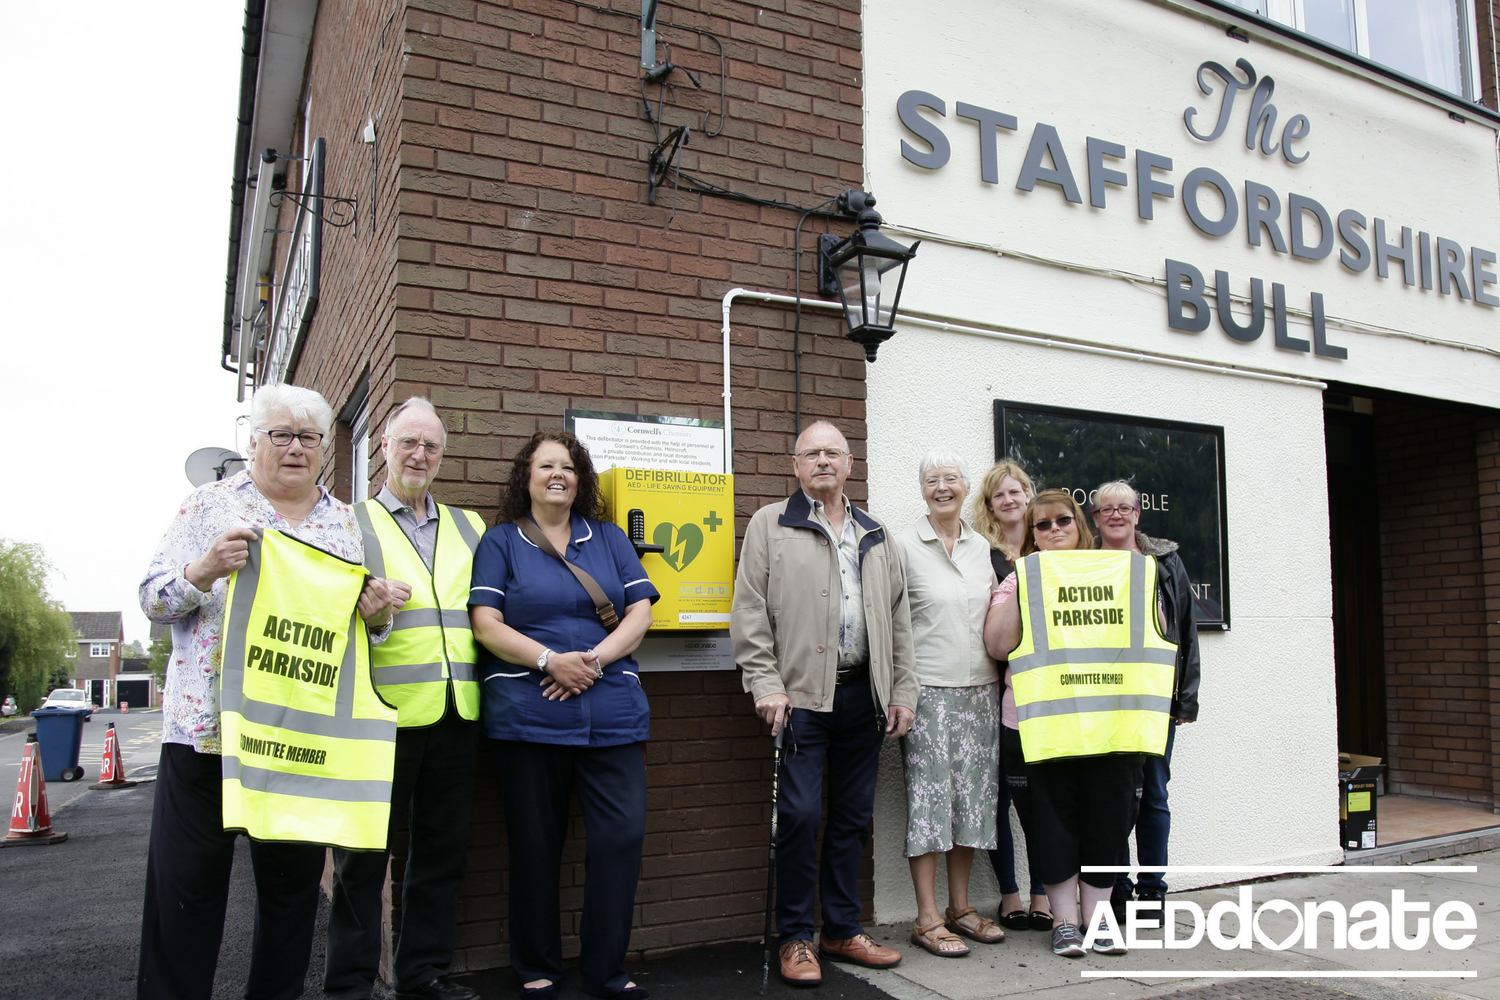 Action Parkside Fundraise for Defibrillator at Local Pub